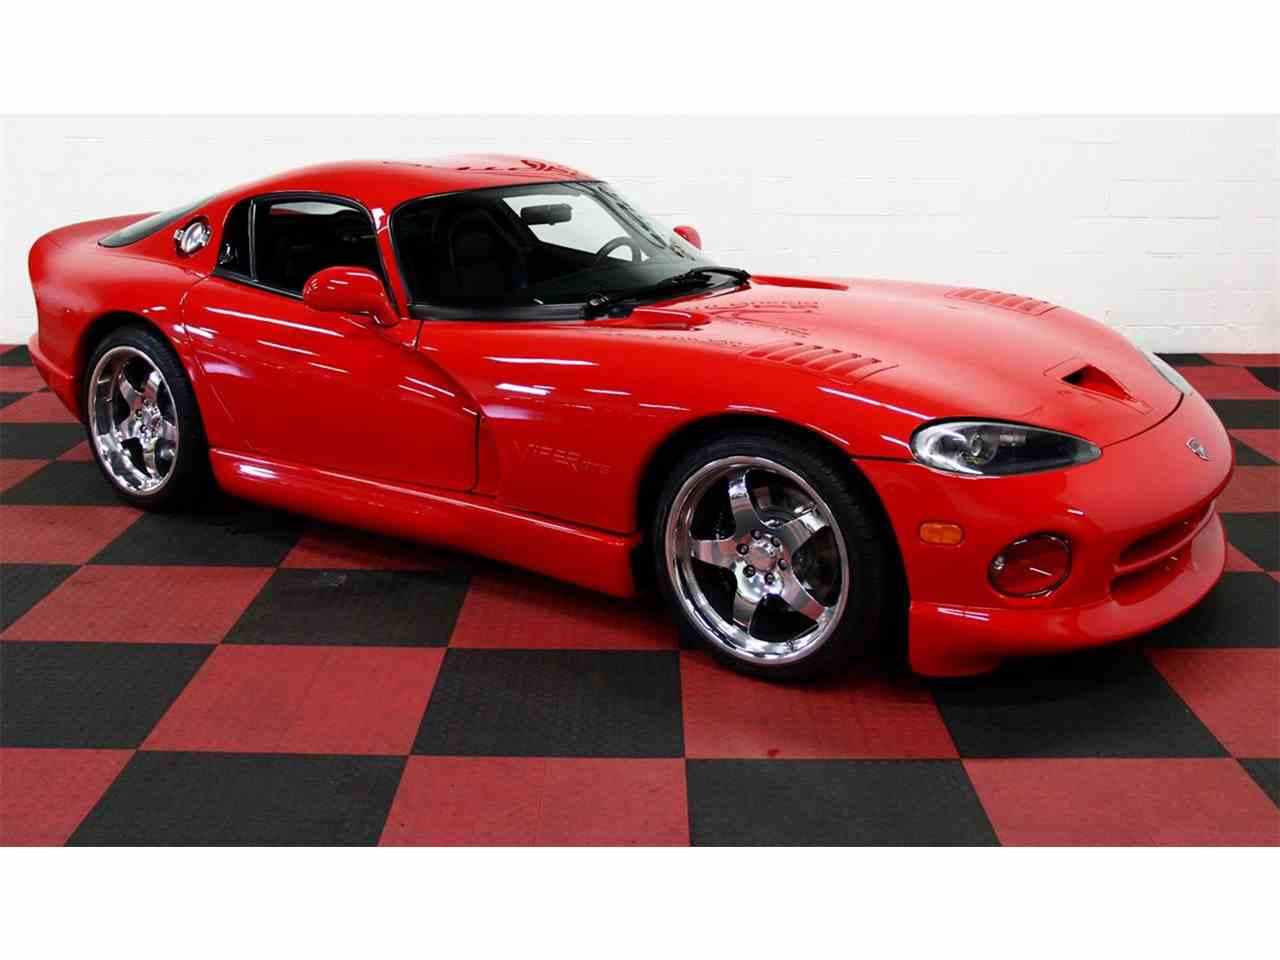 Large Picture of '98 Viper located in Illinois - $49,000.00 Offered by a Private Seller - LSFT